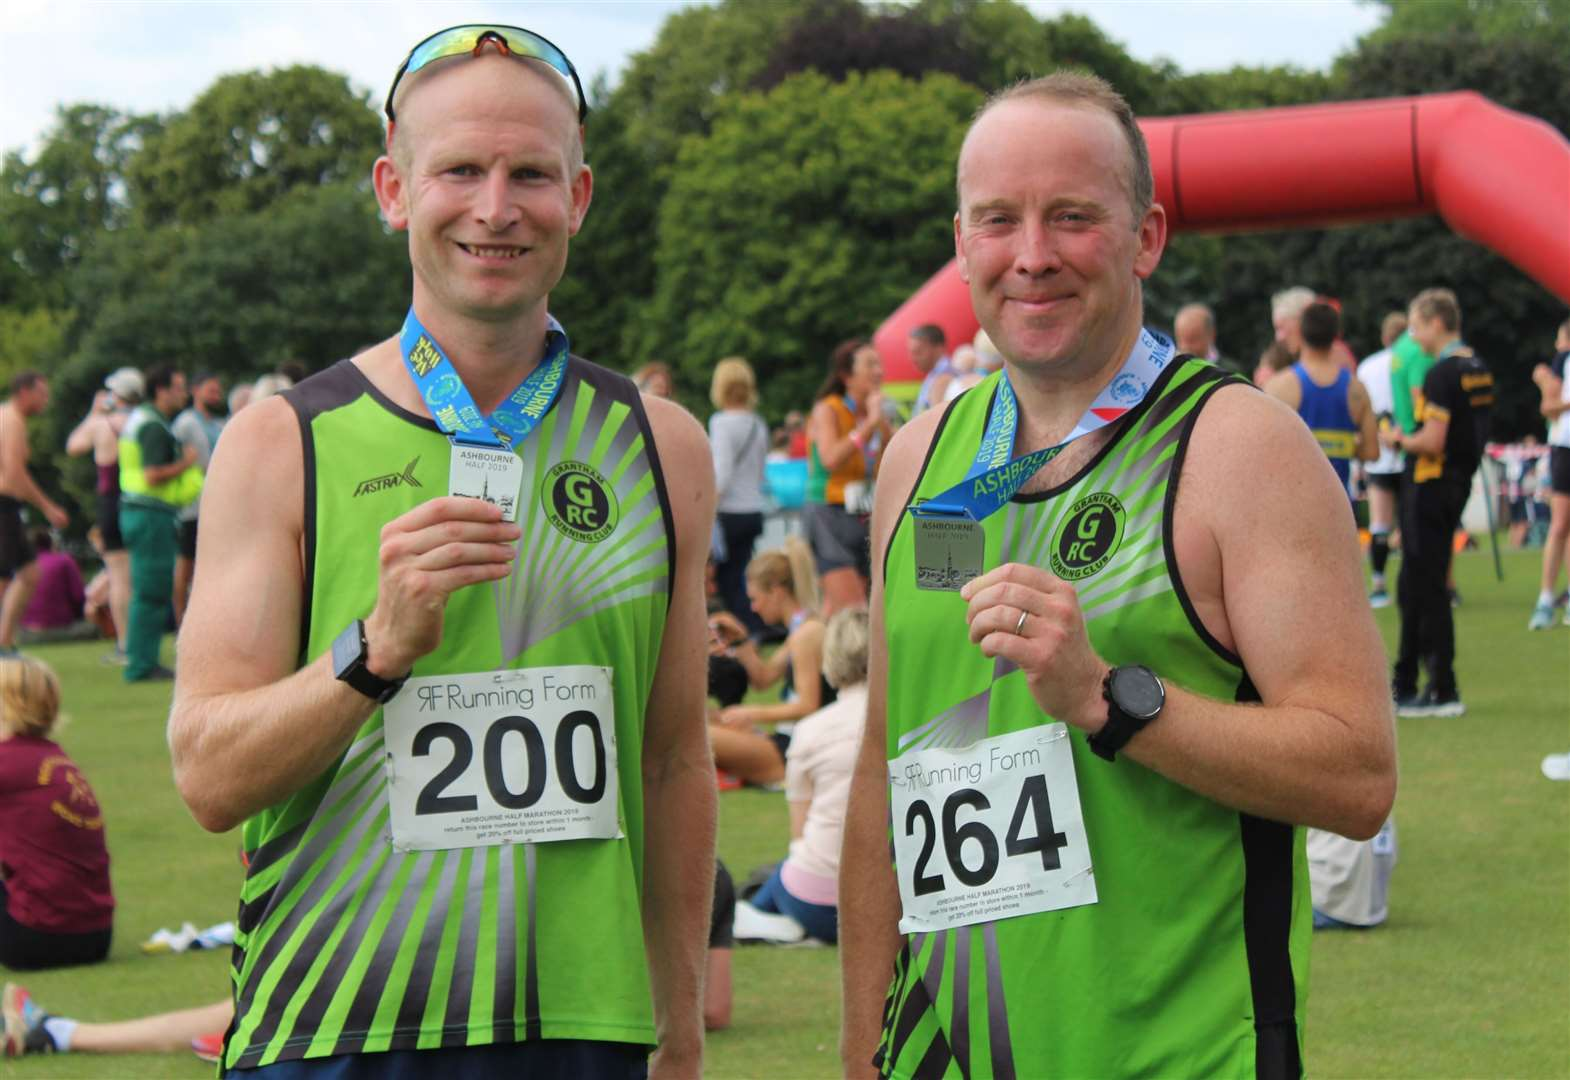 Town club runners Gav and Paul tackle half marathon